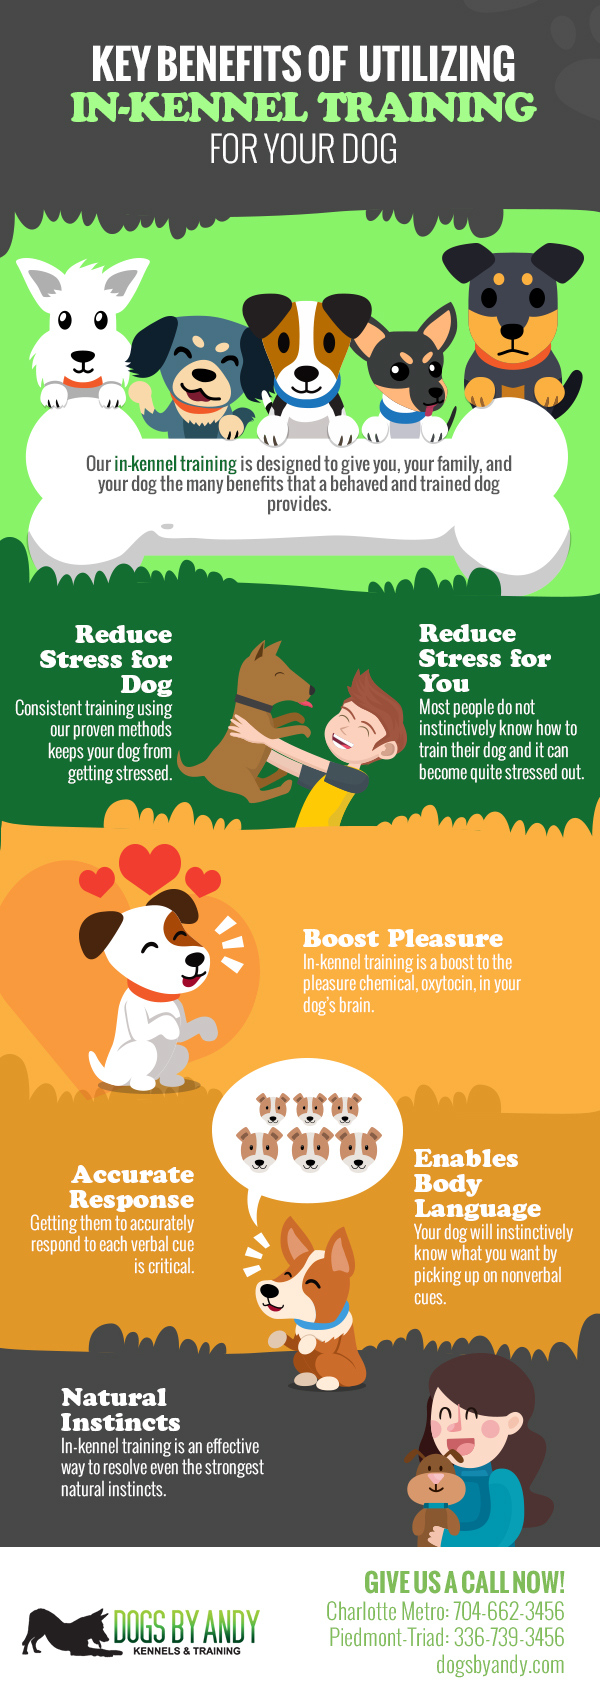 Key Benefits of Utilizing In-Kennel Training for Your Dog [infographic]